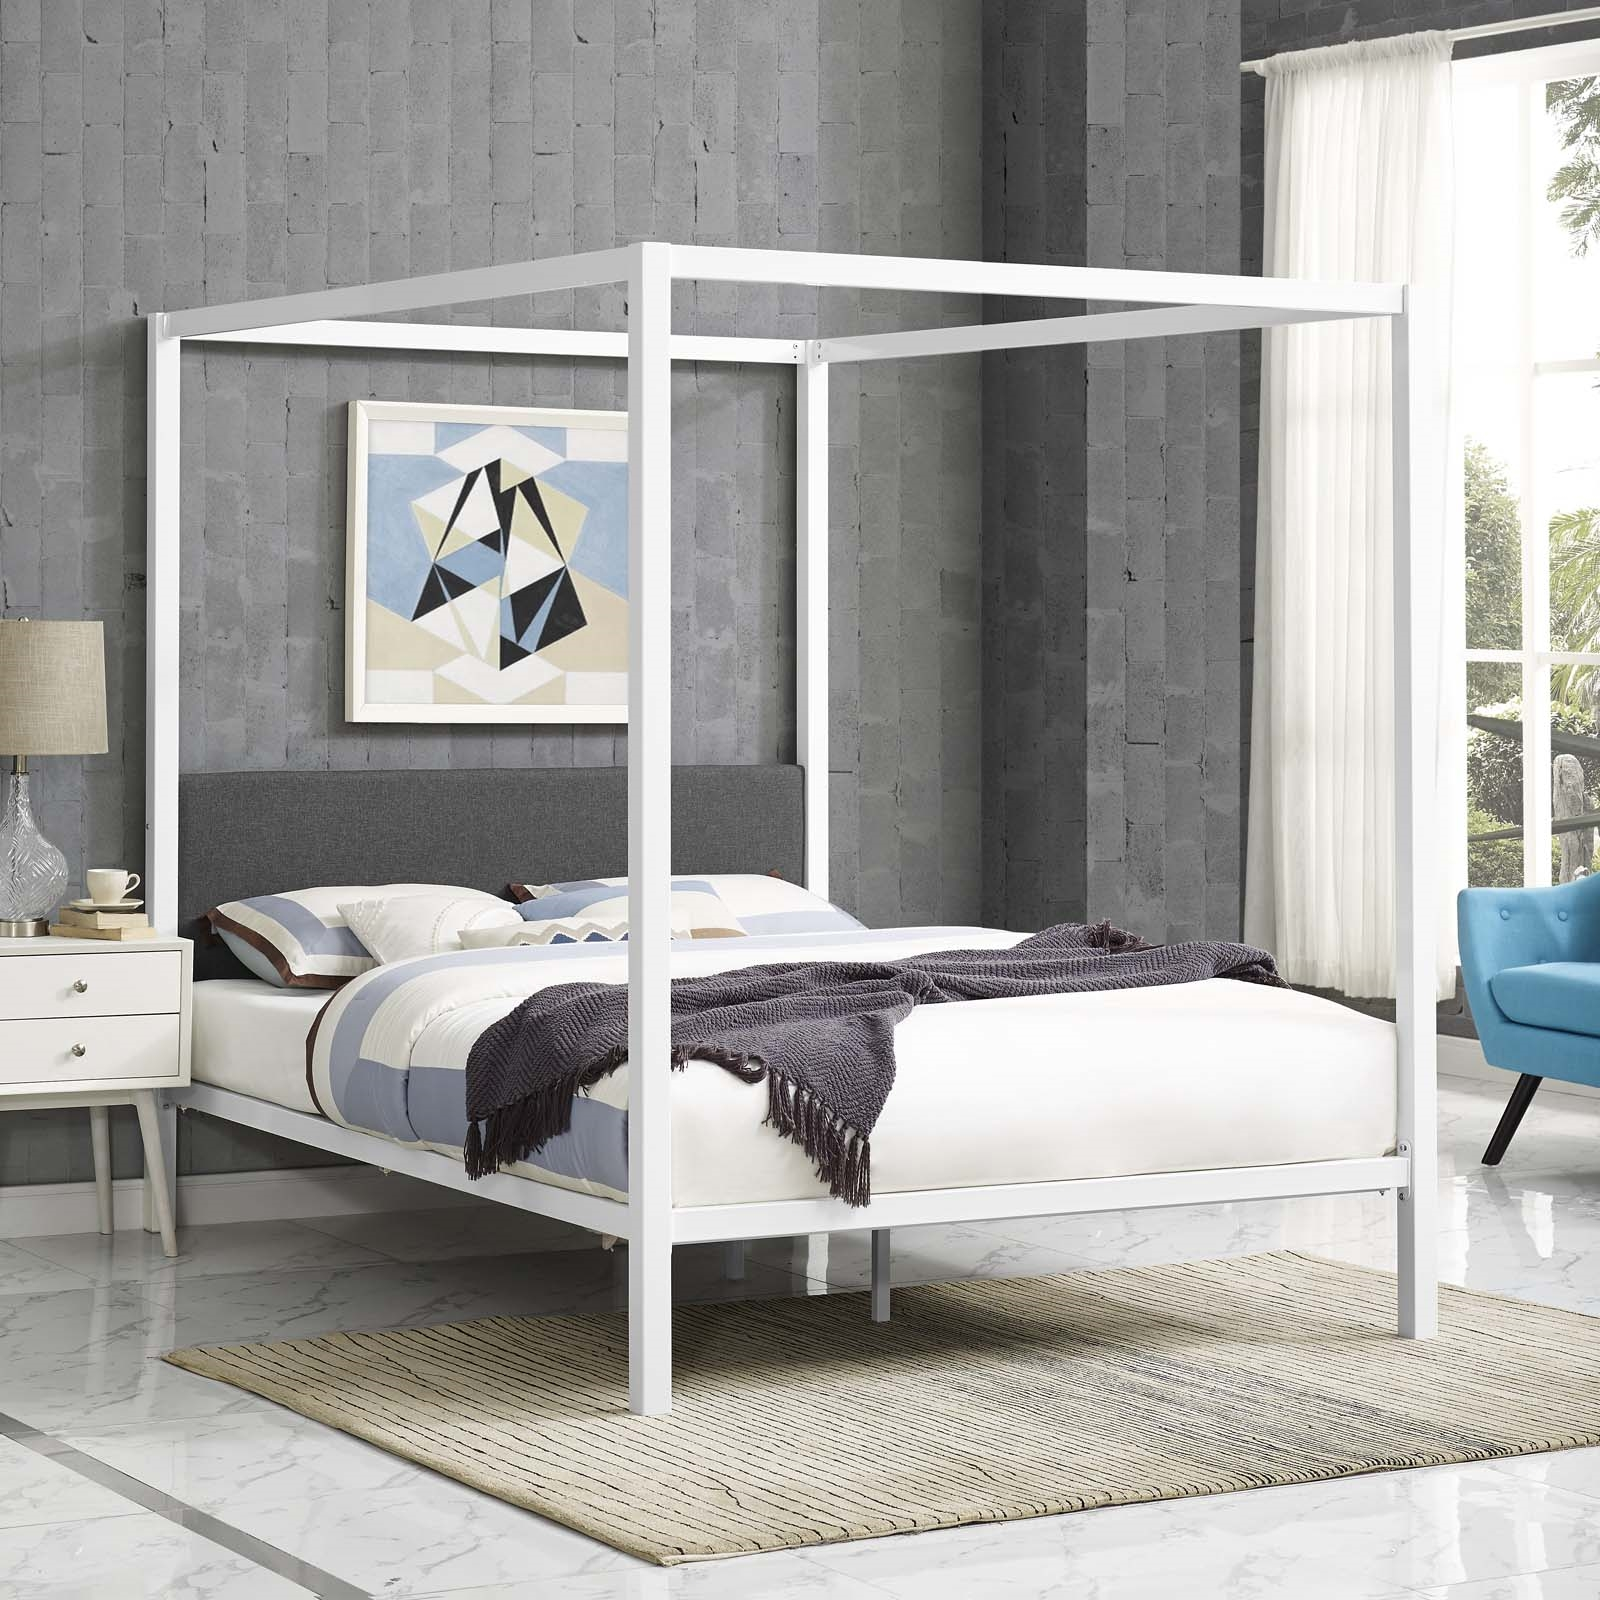 Raina Queen Canopy Bed Frame in White Gray